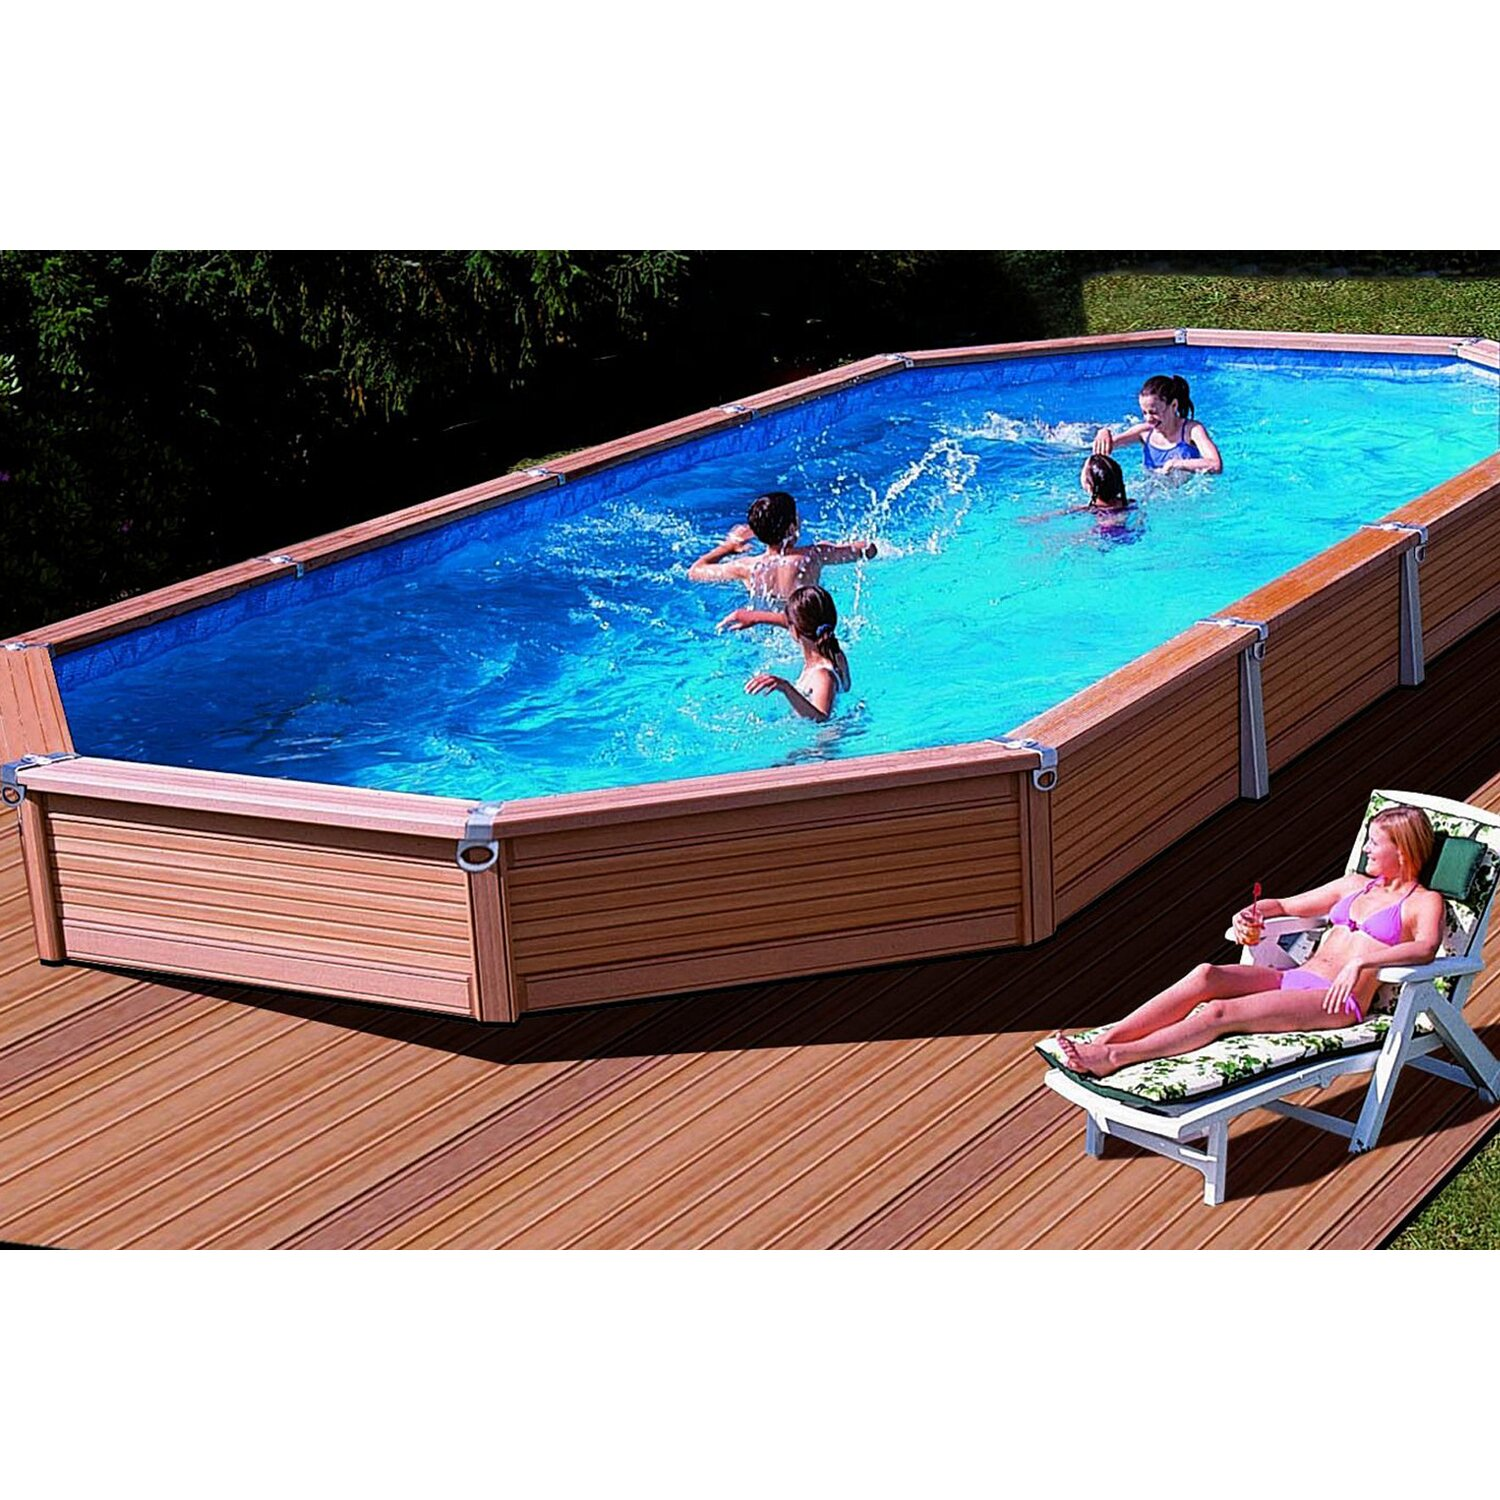 einbaupool set cheap summer fun set tlg bxlxh xx cm with. Black Bedroom Furniture Sets. Home Design Ideas